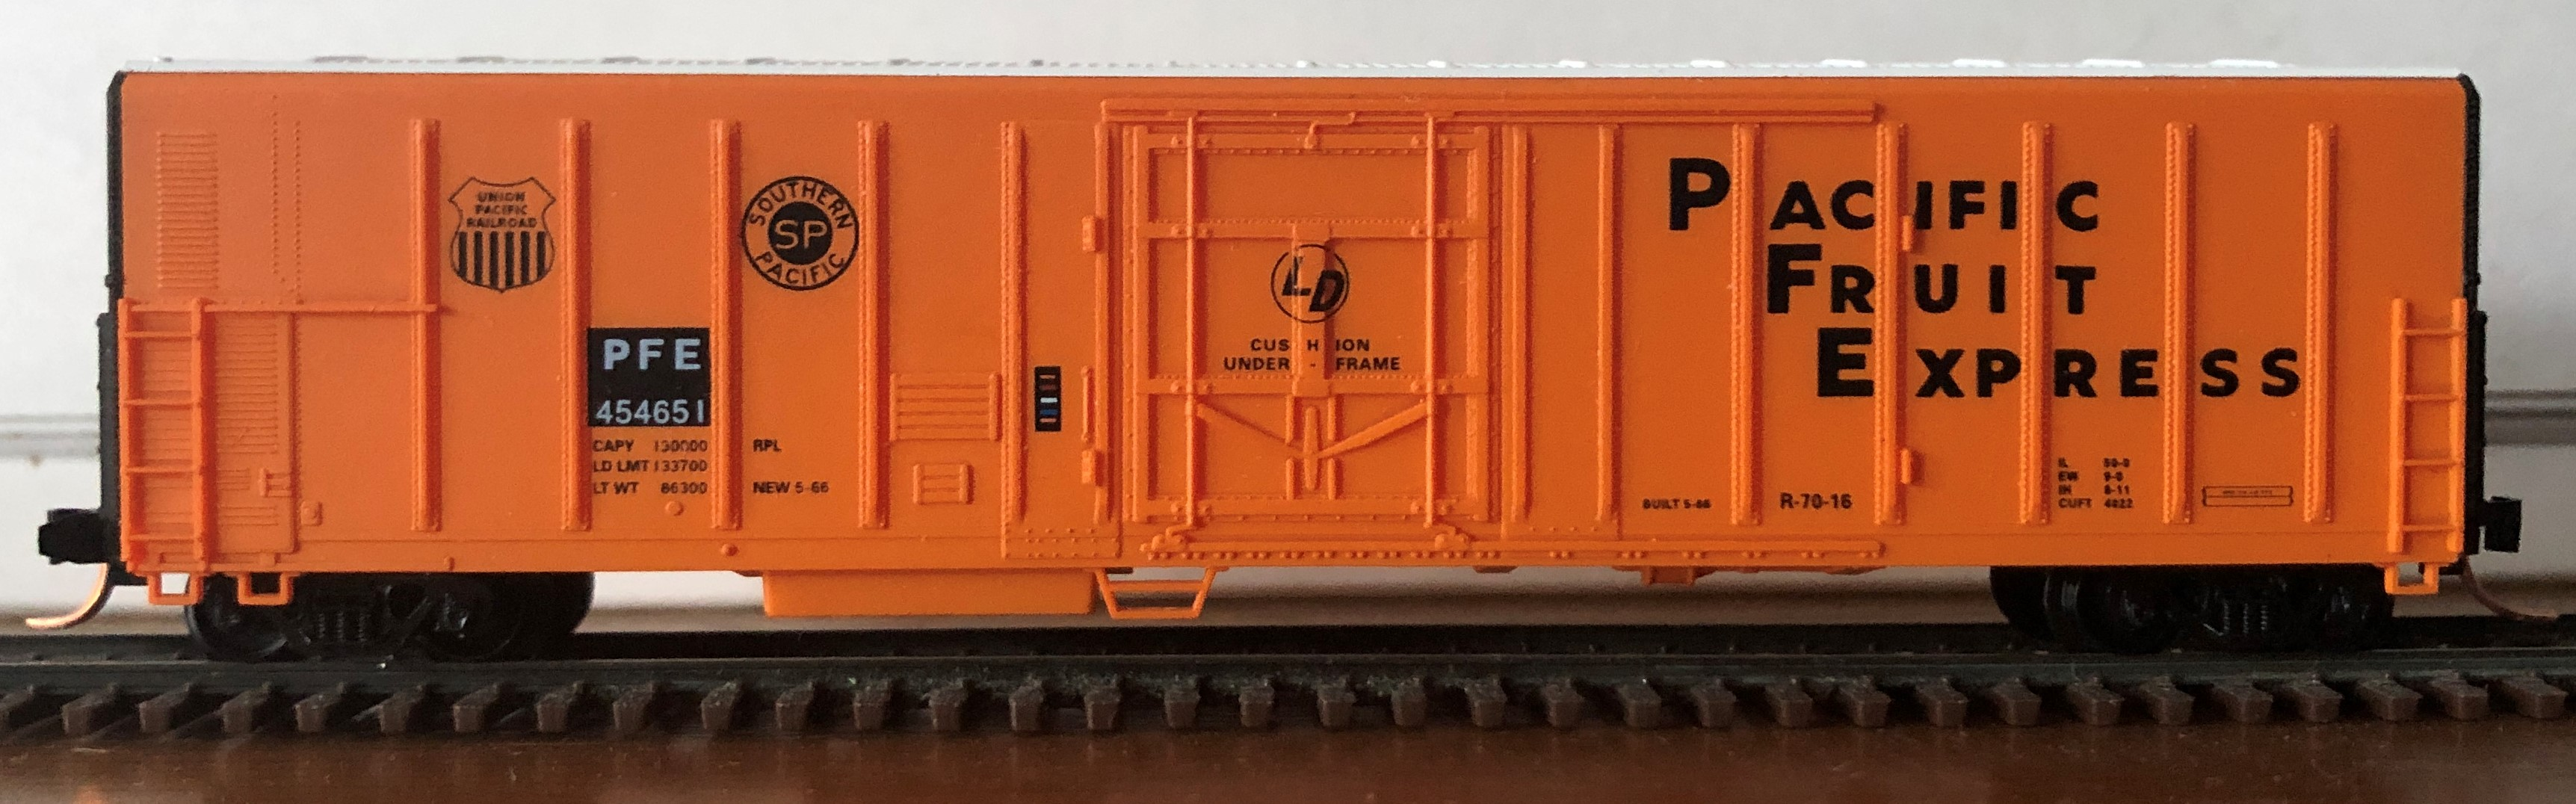 N Scale - Red Caboose - RM-18651-2 - Reefer, 57 Foot, Mechanical, PC&F R-70-16 - Pacific Fruit Express - 454601